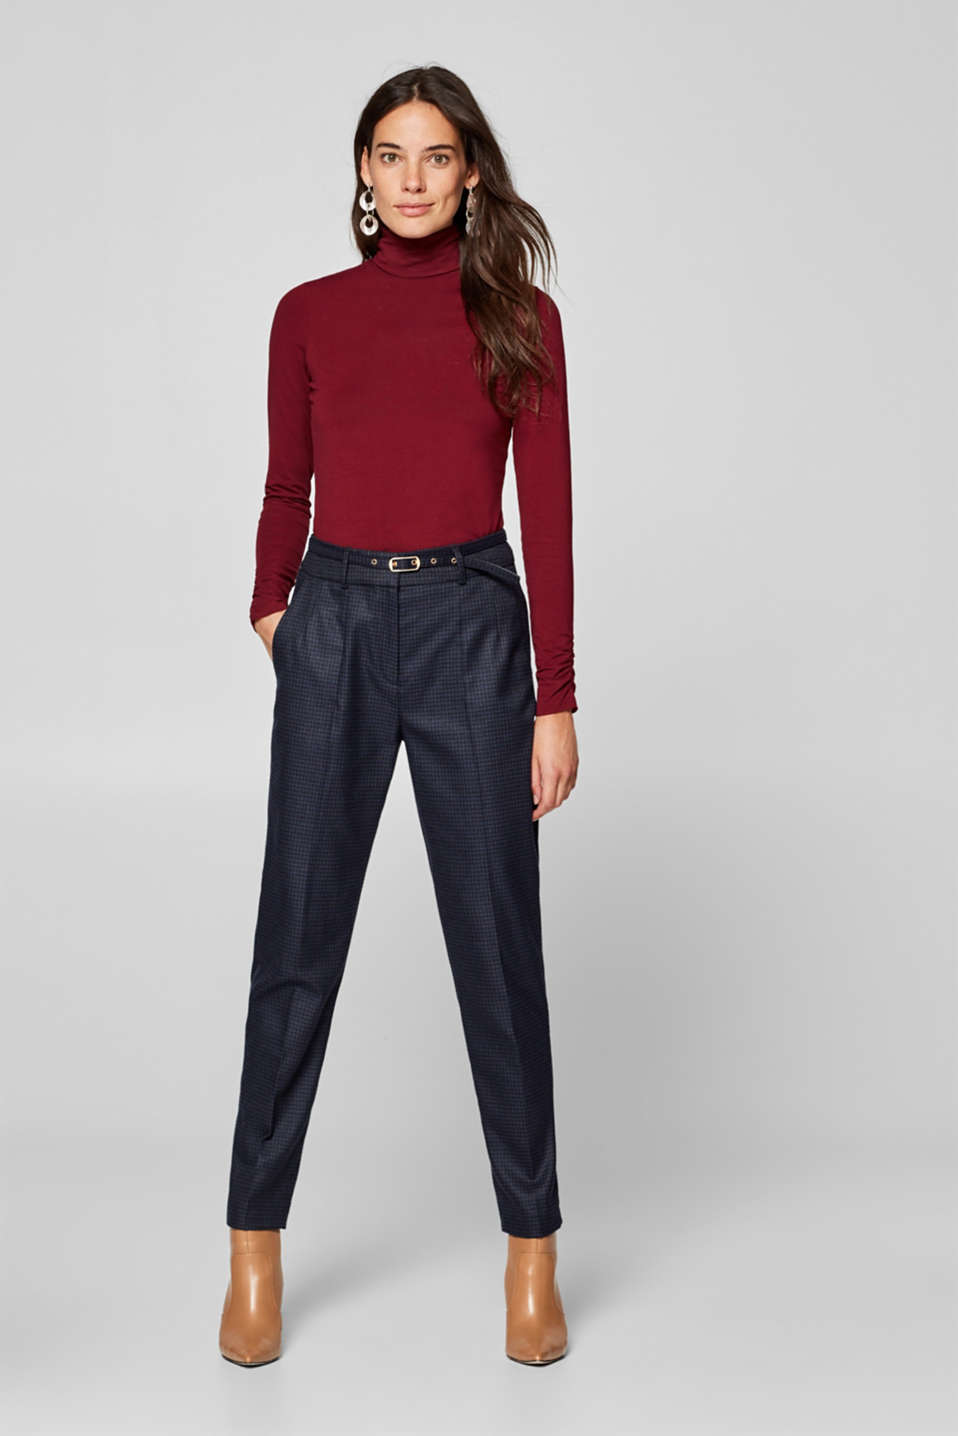 Esprit - Check stretch trousers with a narrow belt